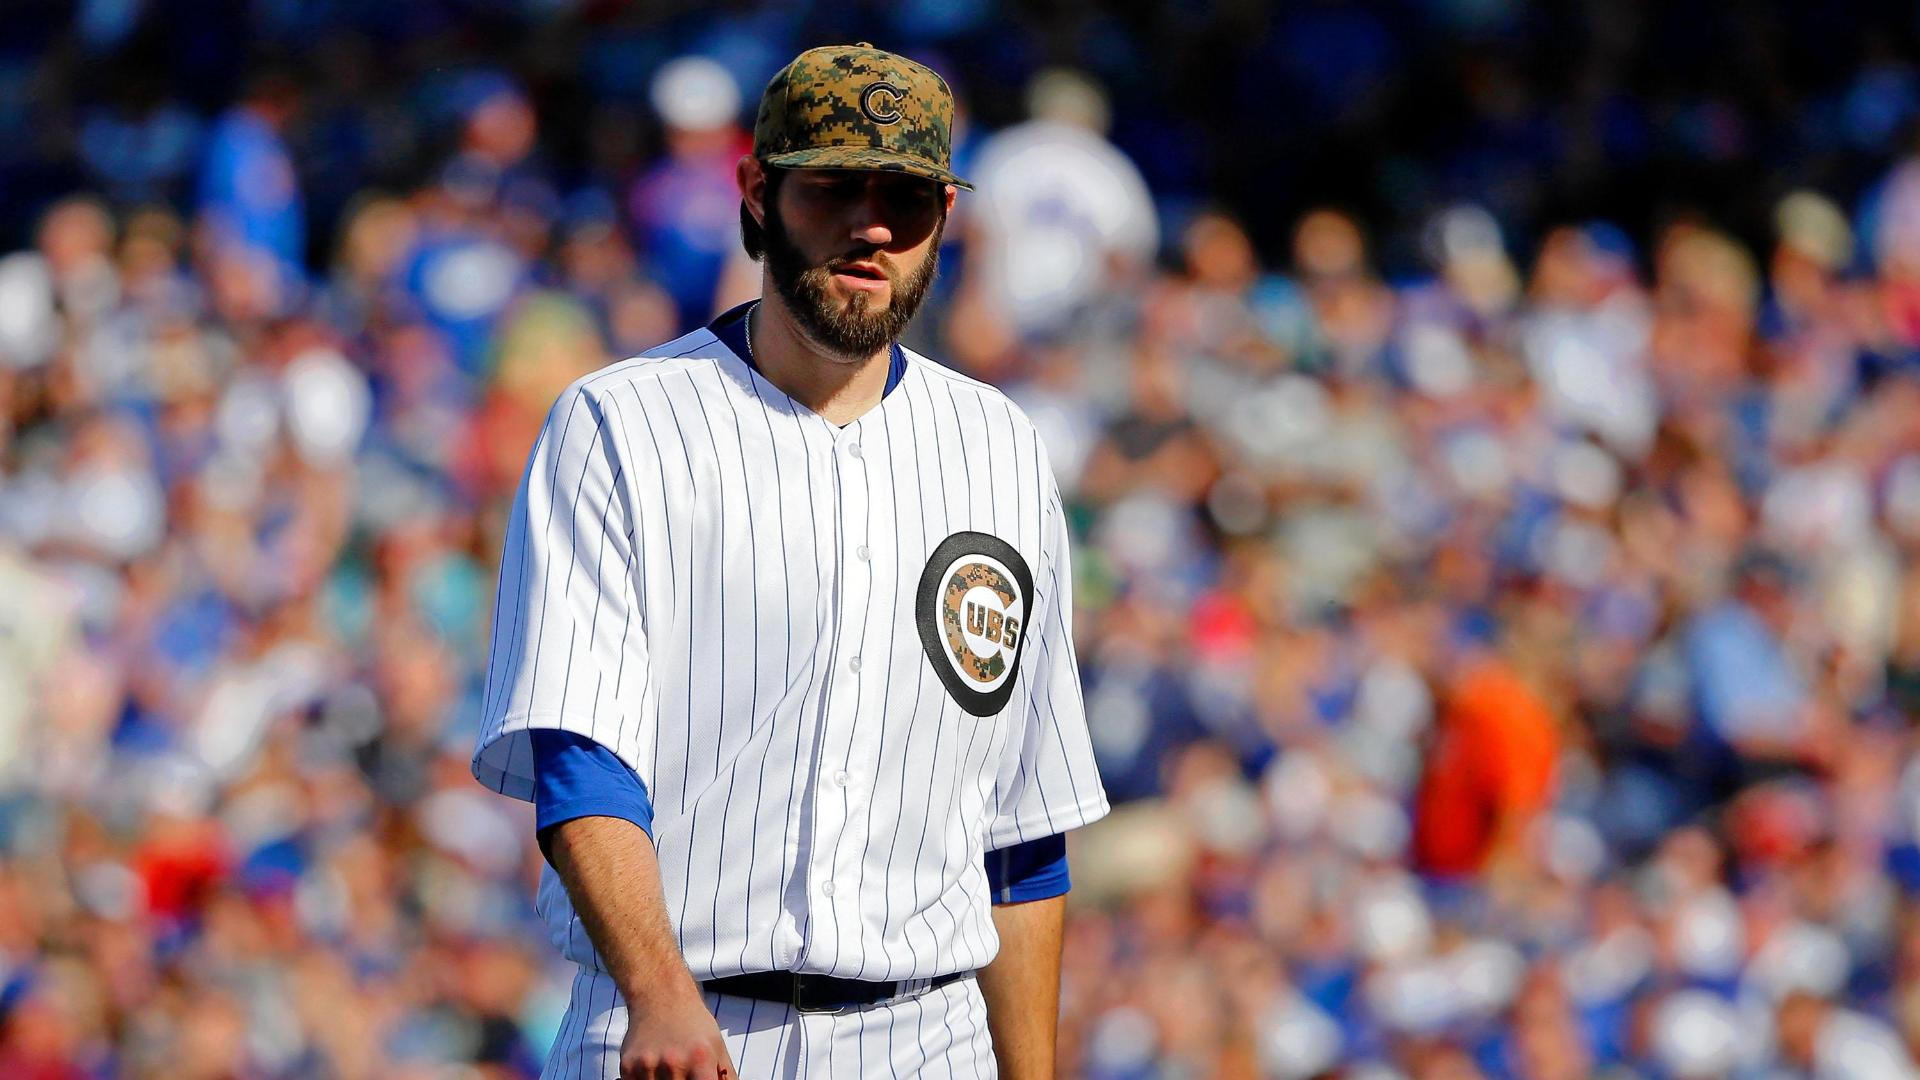 Hammel exits early, Cubs bullpen dominates Dodgers